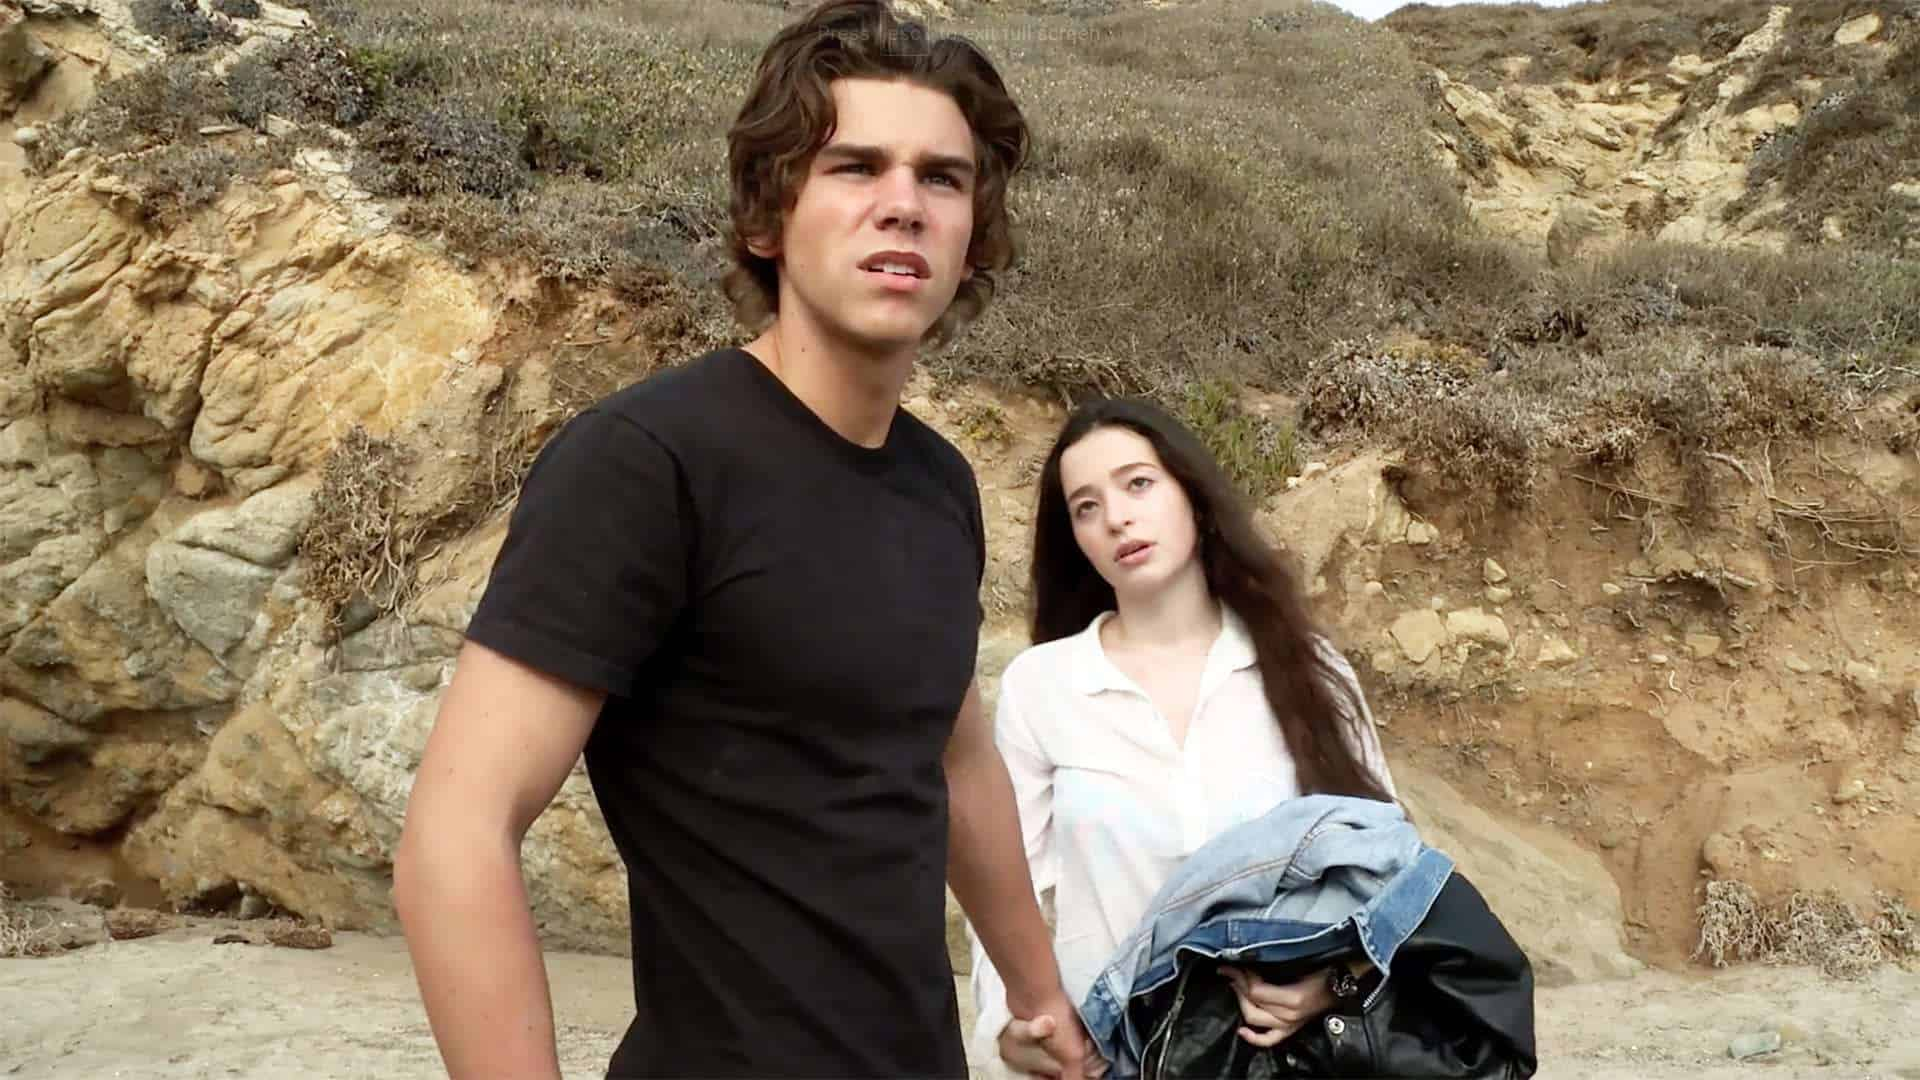 Brett (Sean H. Scully) and Liza (Mikey Madison) on a beach, being harassed.